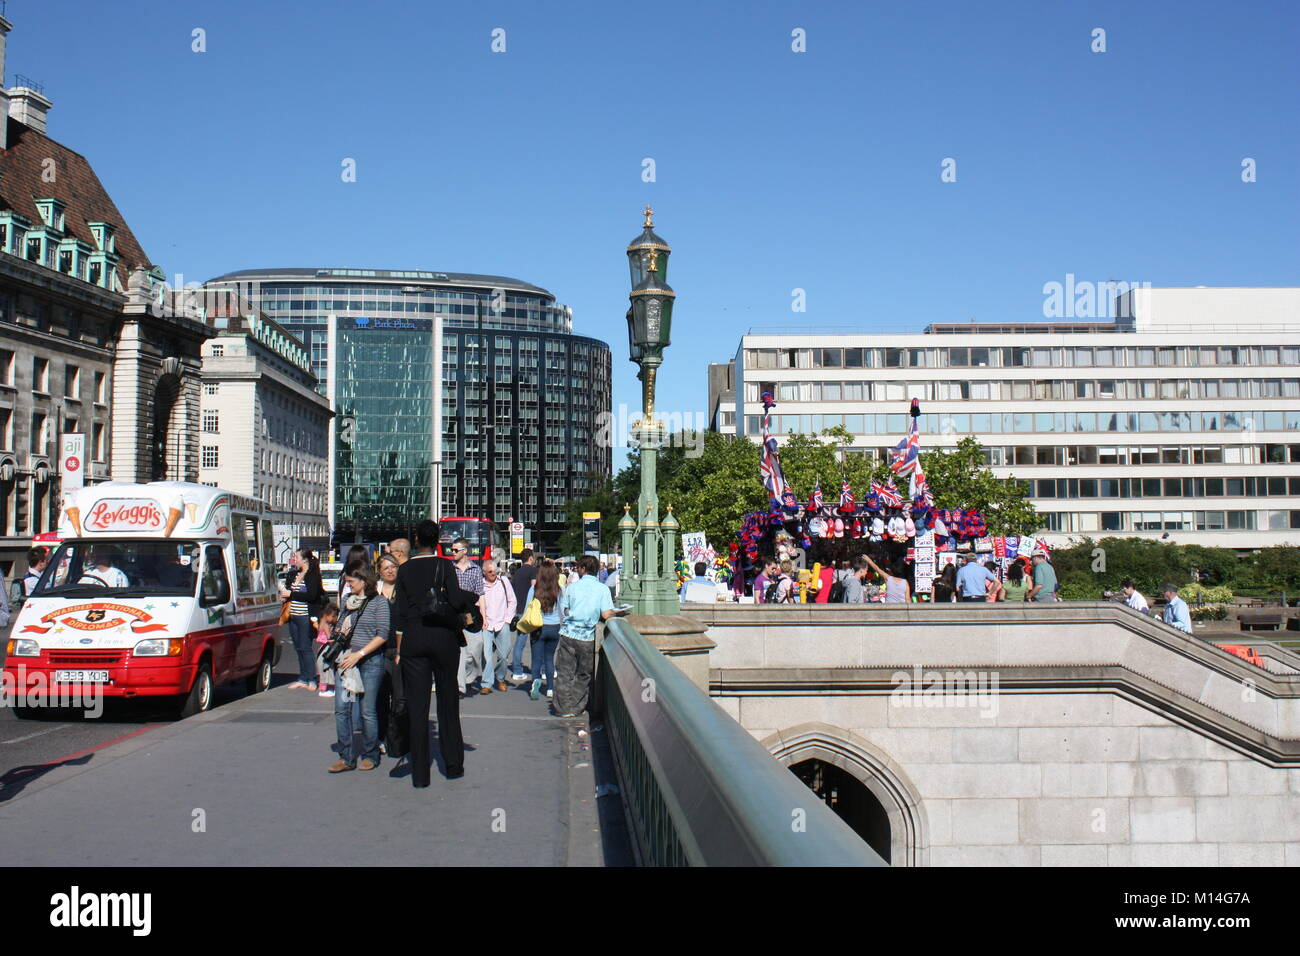 People in London city Stock Photo